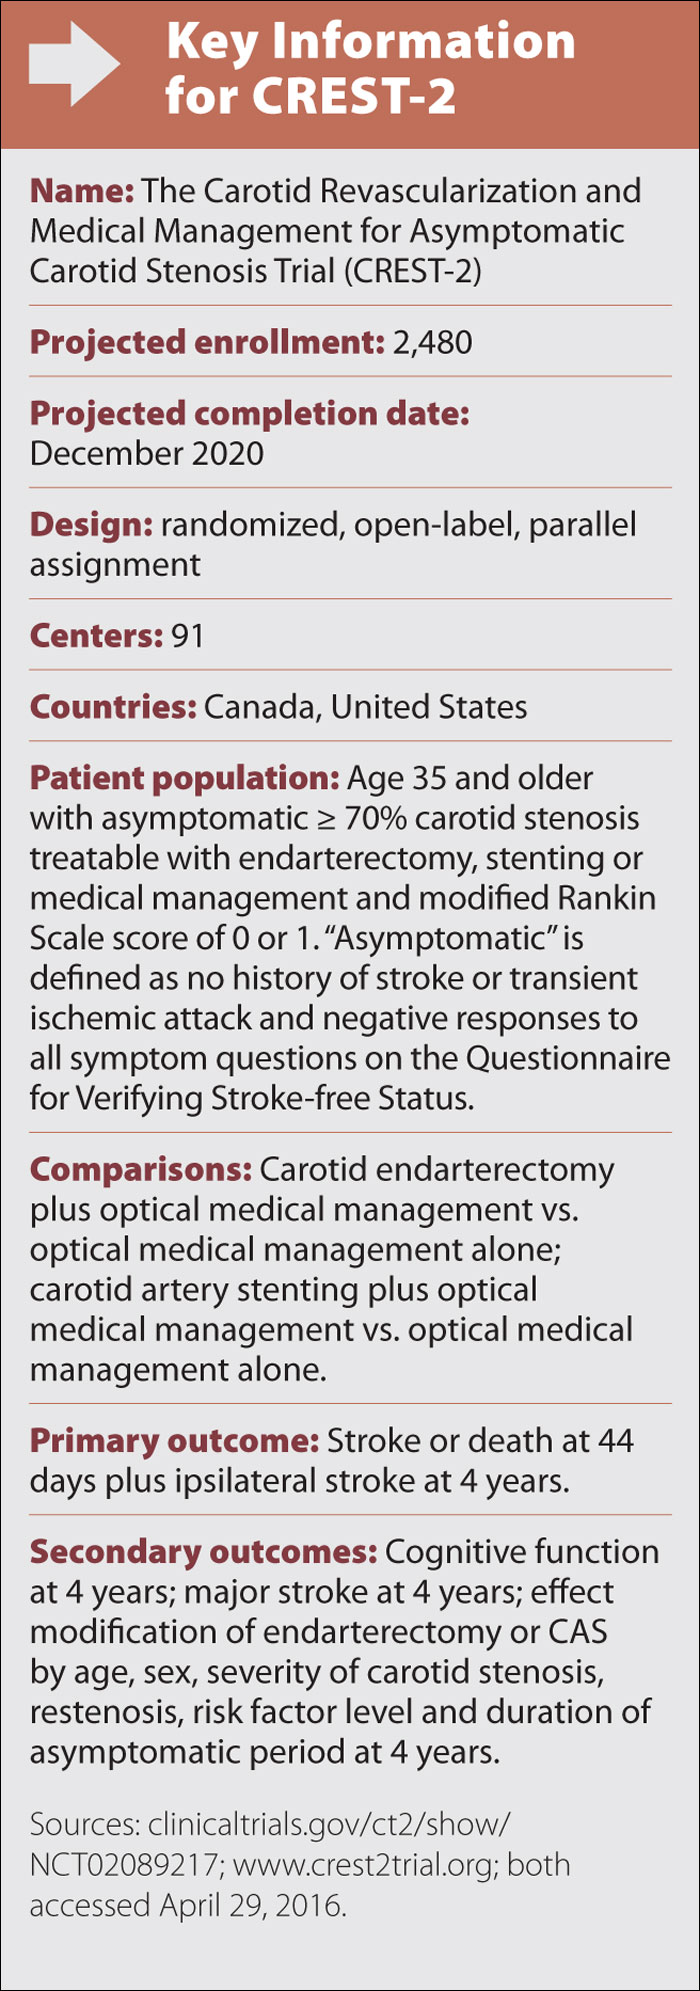 The Carotid Controversy